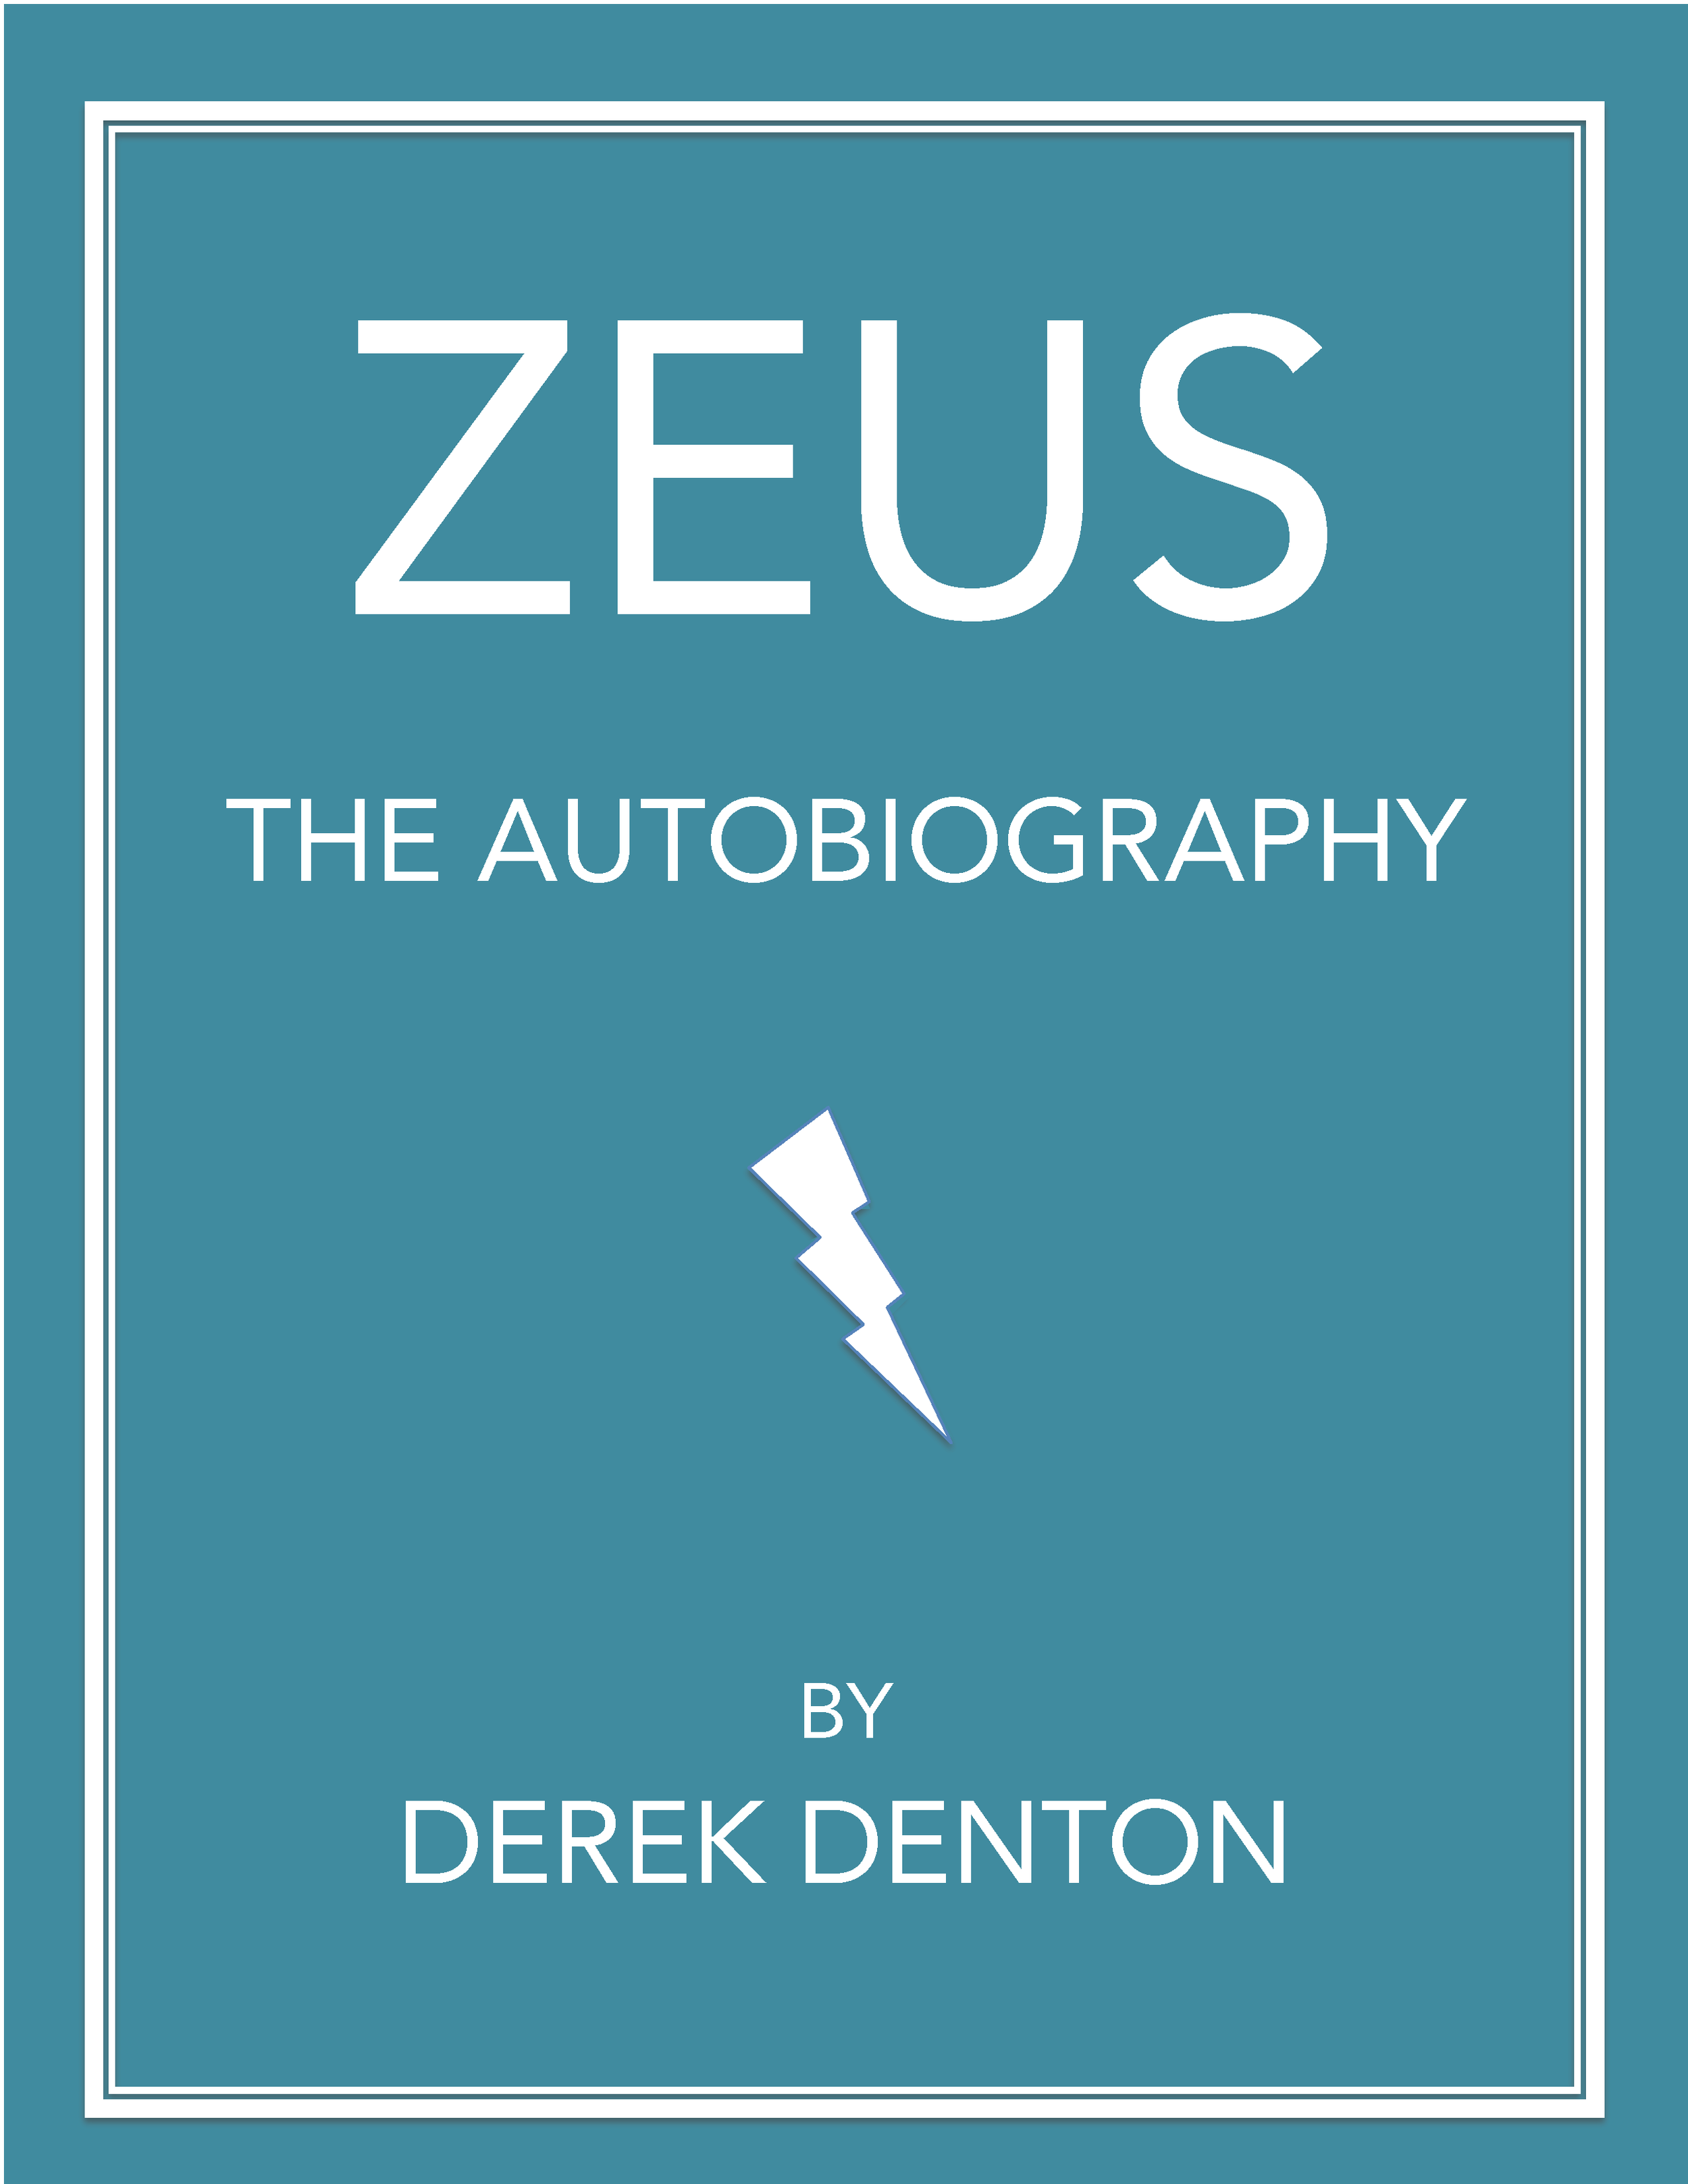 000Zeus-Master Cover.png